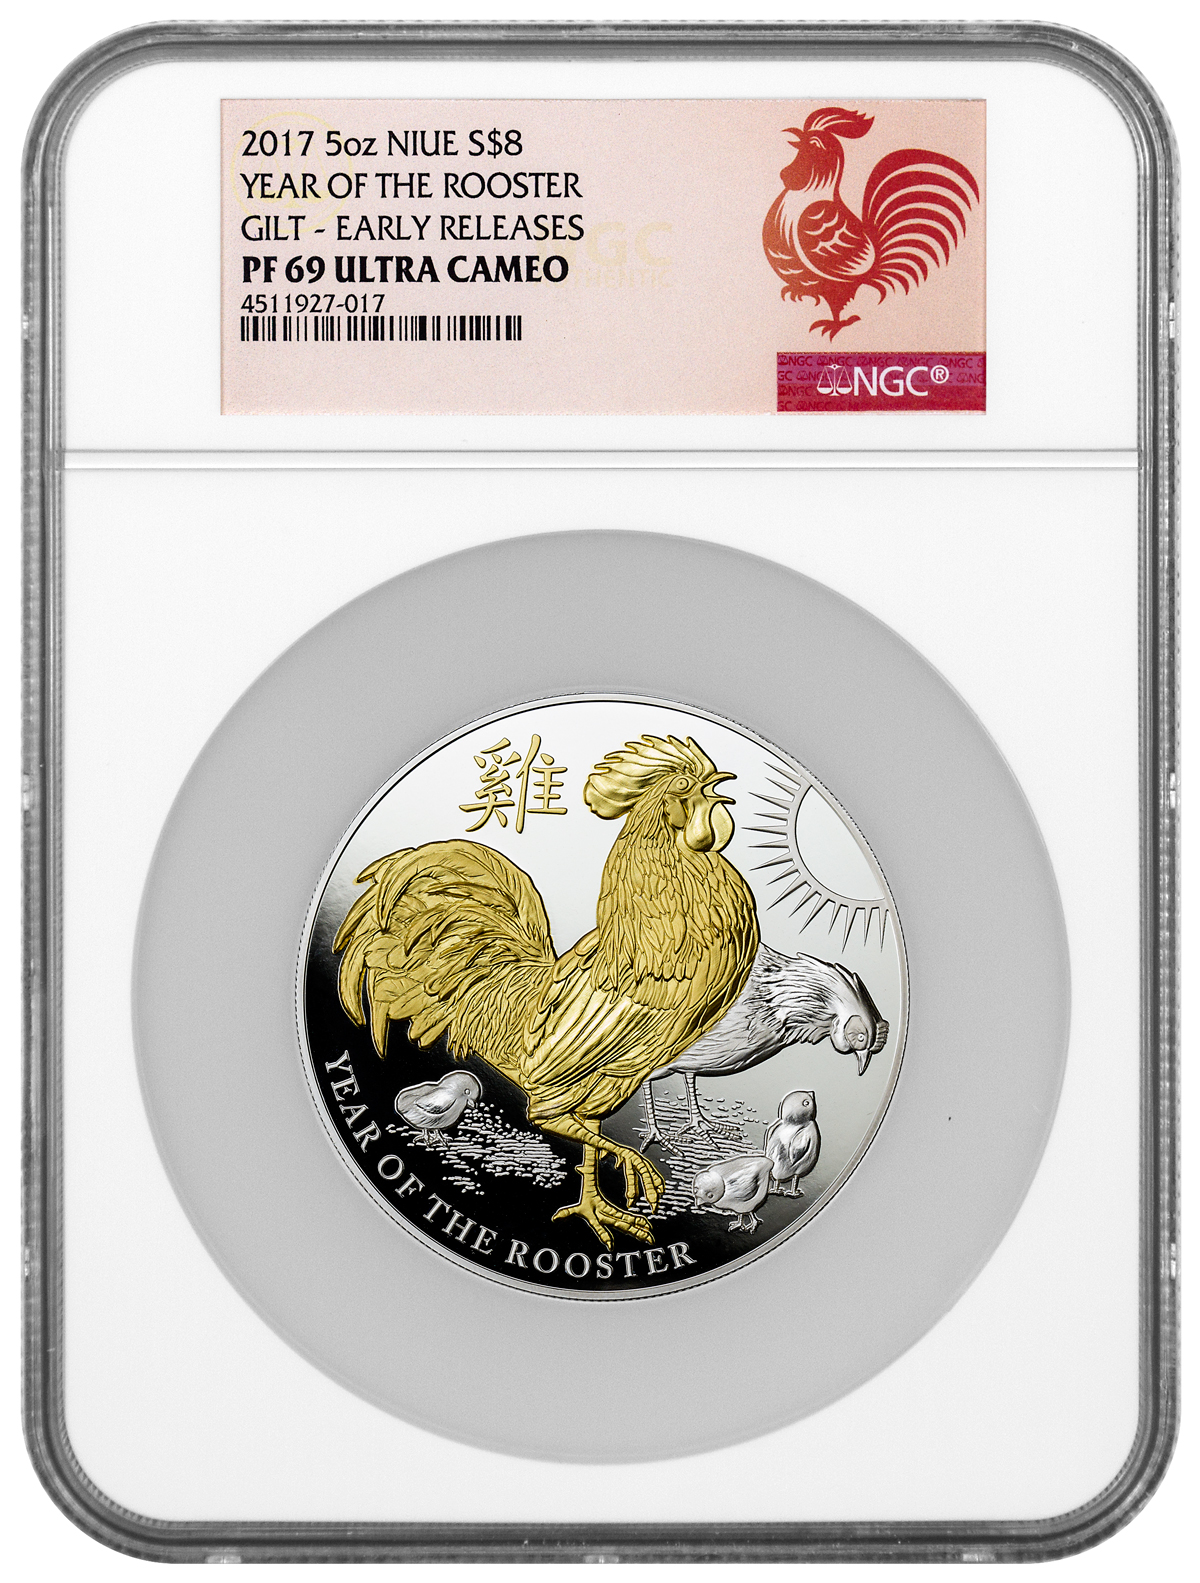 2017 Niue Year of the Rooster High Relief 5 oz Silver Lunar Gilt Proof $8 Coin NGC PF69 UC ER (Rooster Label)